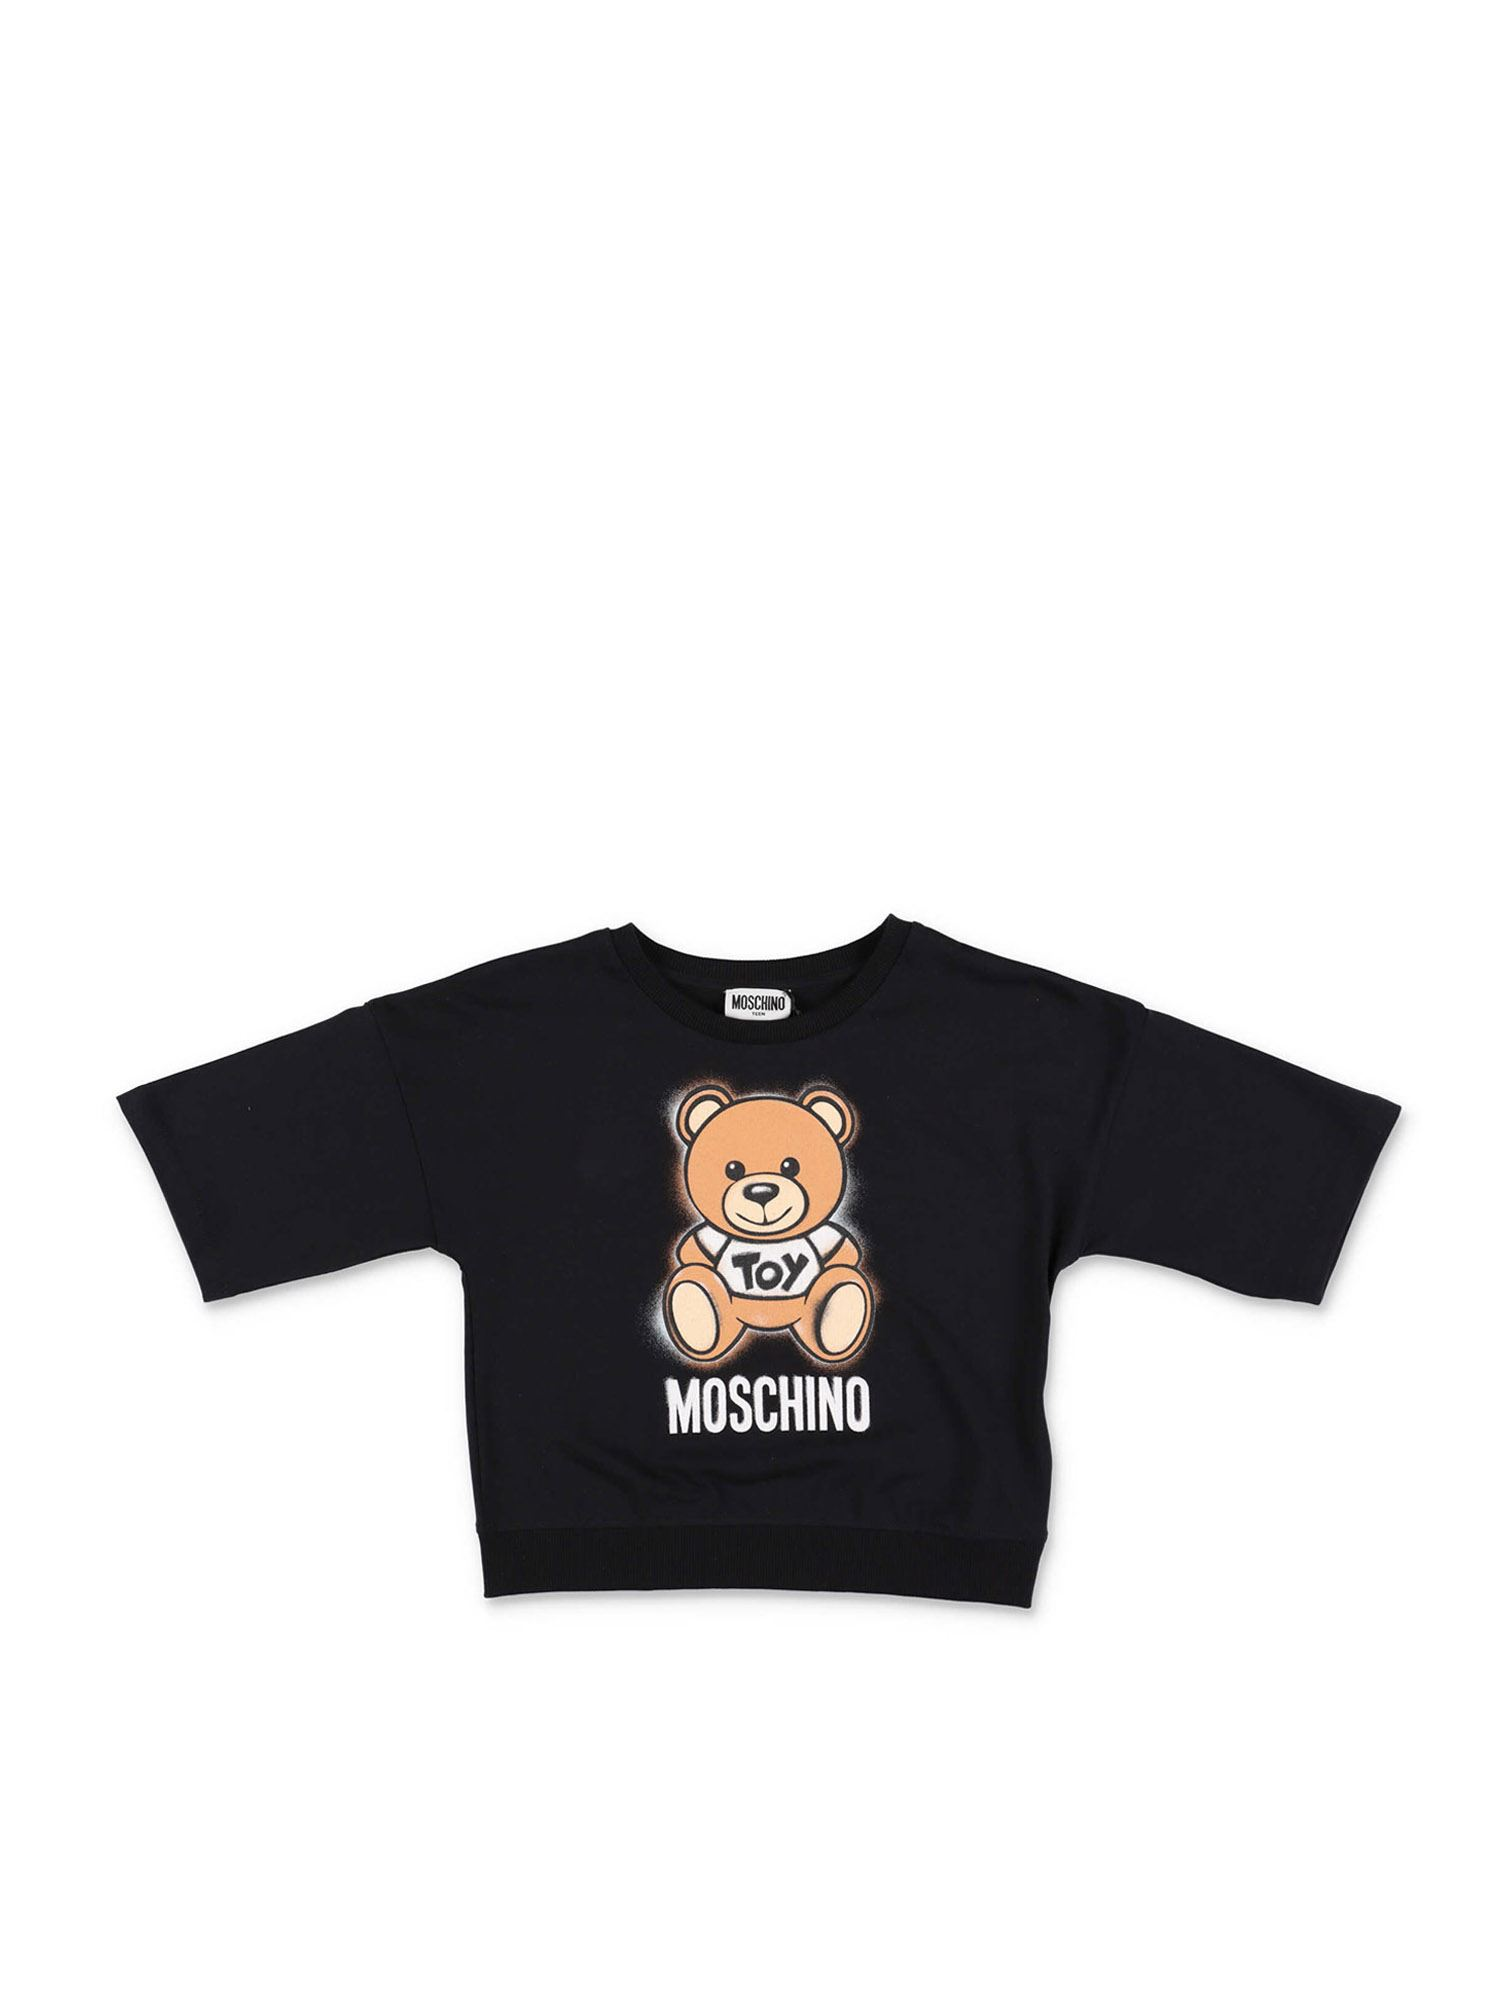 Moschino T-shirts OVERSIZED T-SHIRT IN BLACK